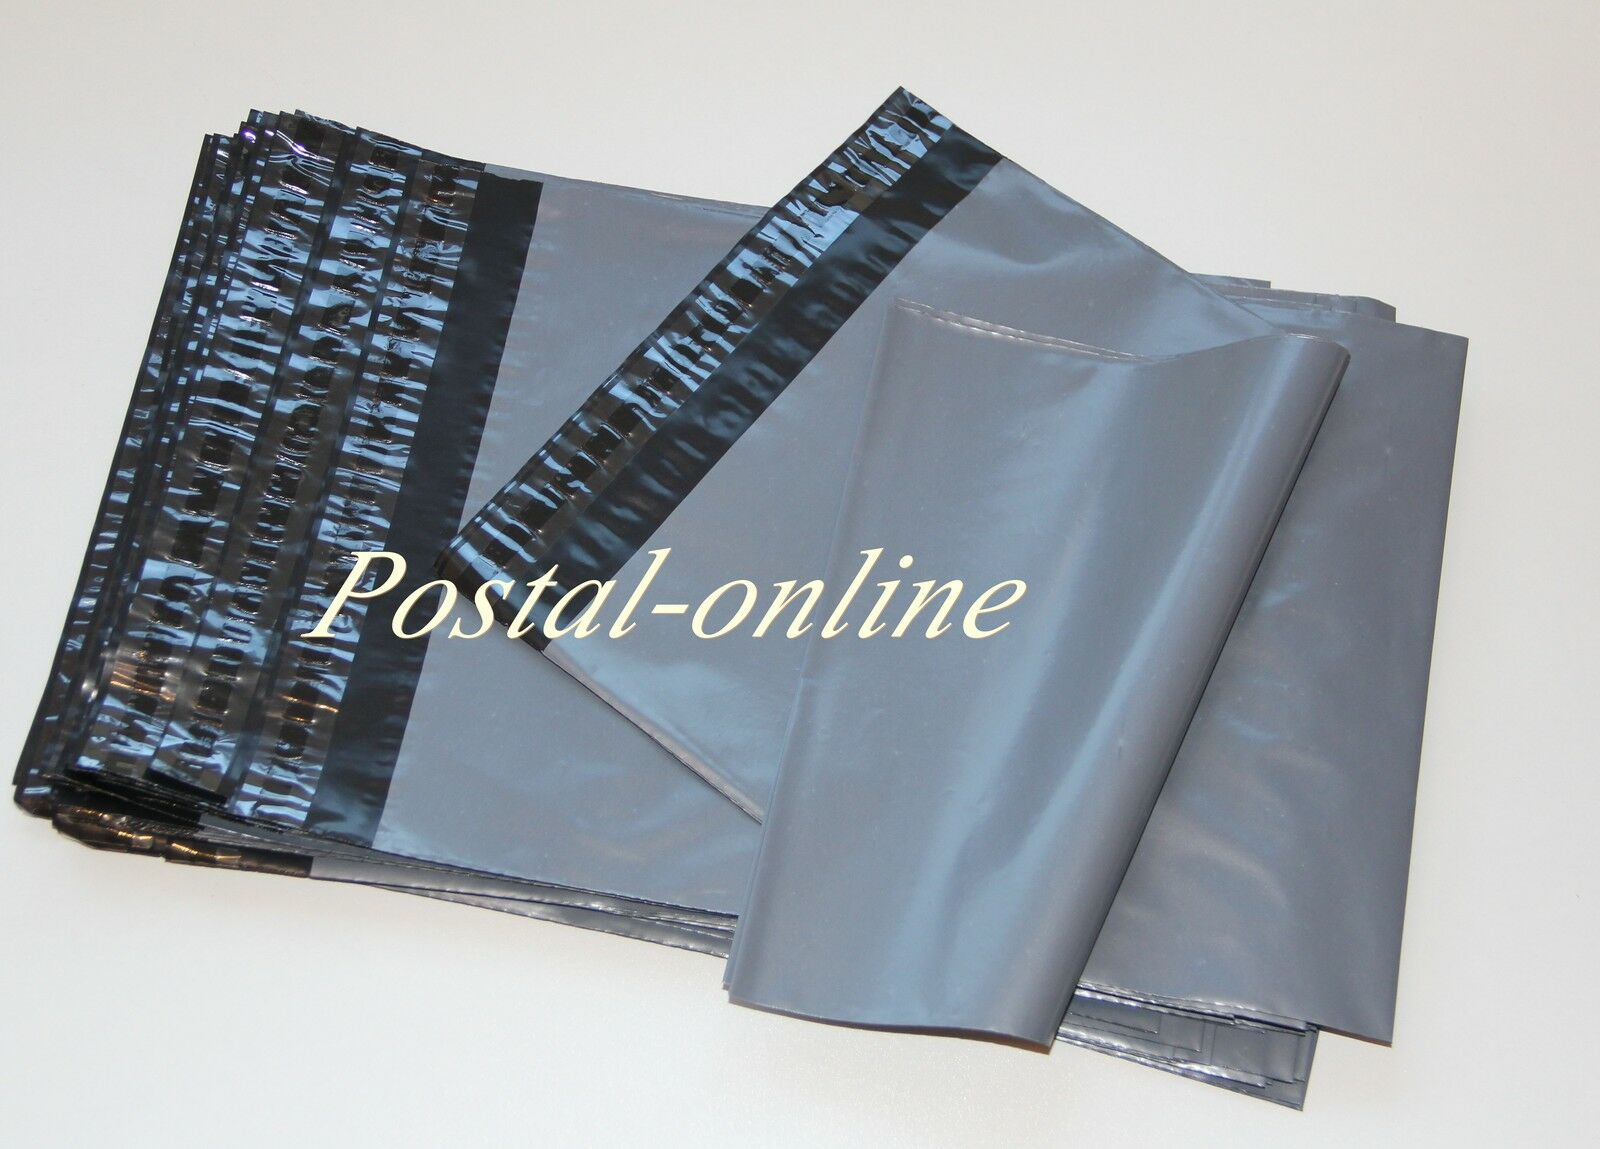 GREY Postal Postage Mailing Poly Bags 24 x 36 600x 900 10 20 50 100 200 500 1000